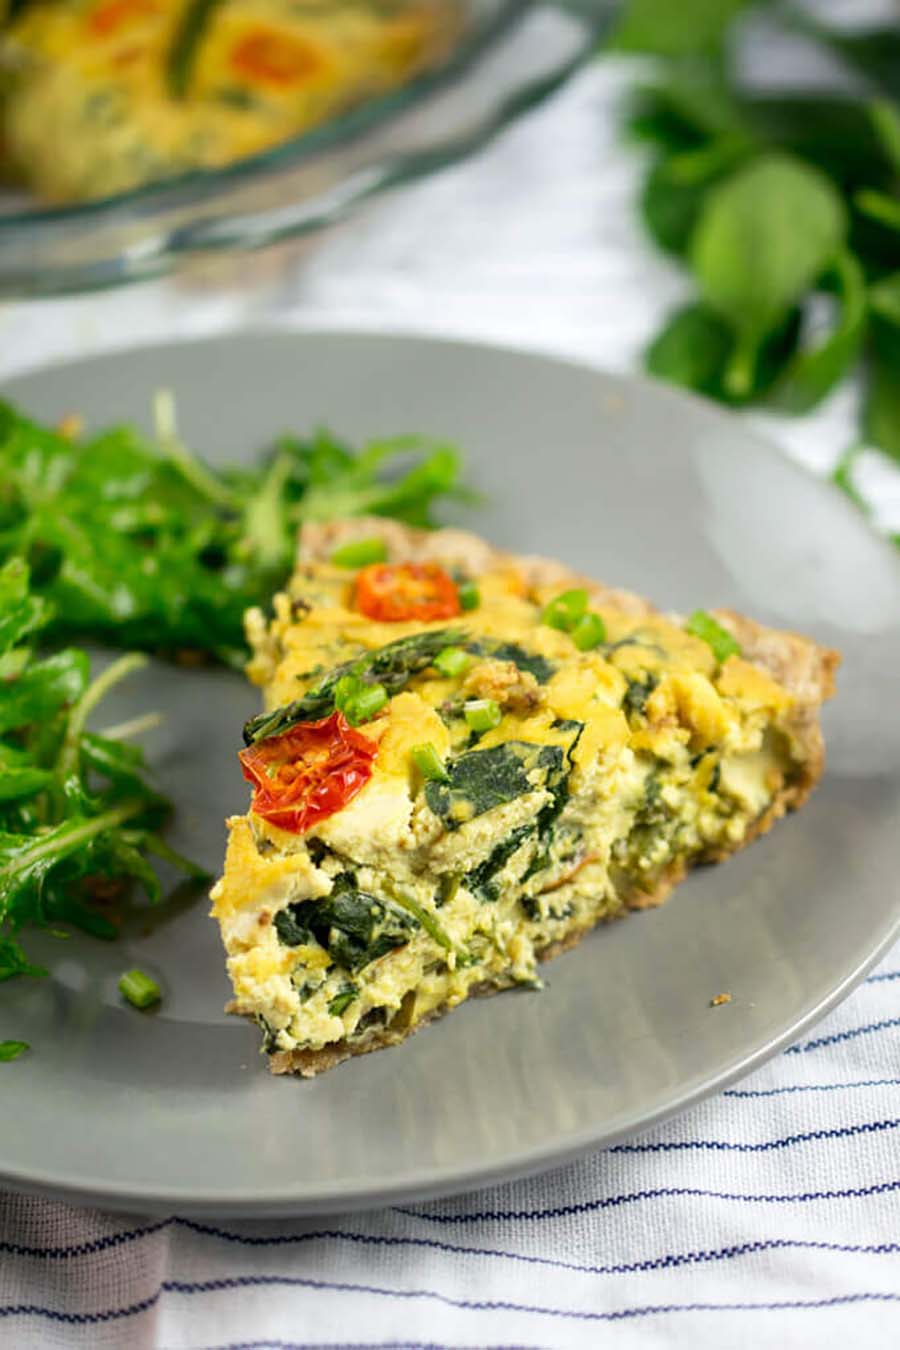 A slice of tofu chickpea quiche sitting on a plate next to a serving of greens.